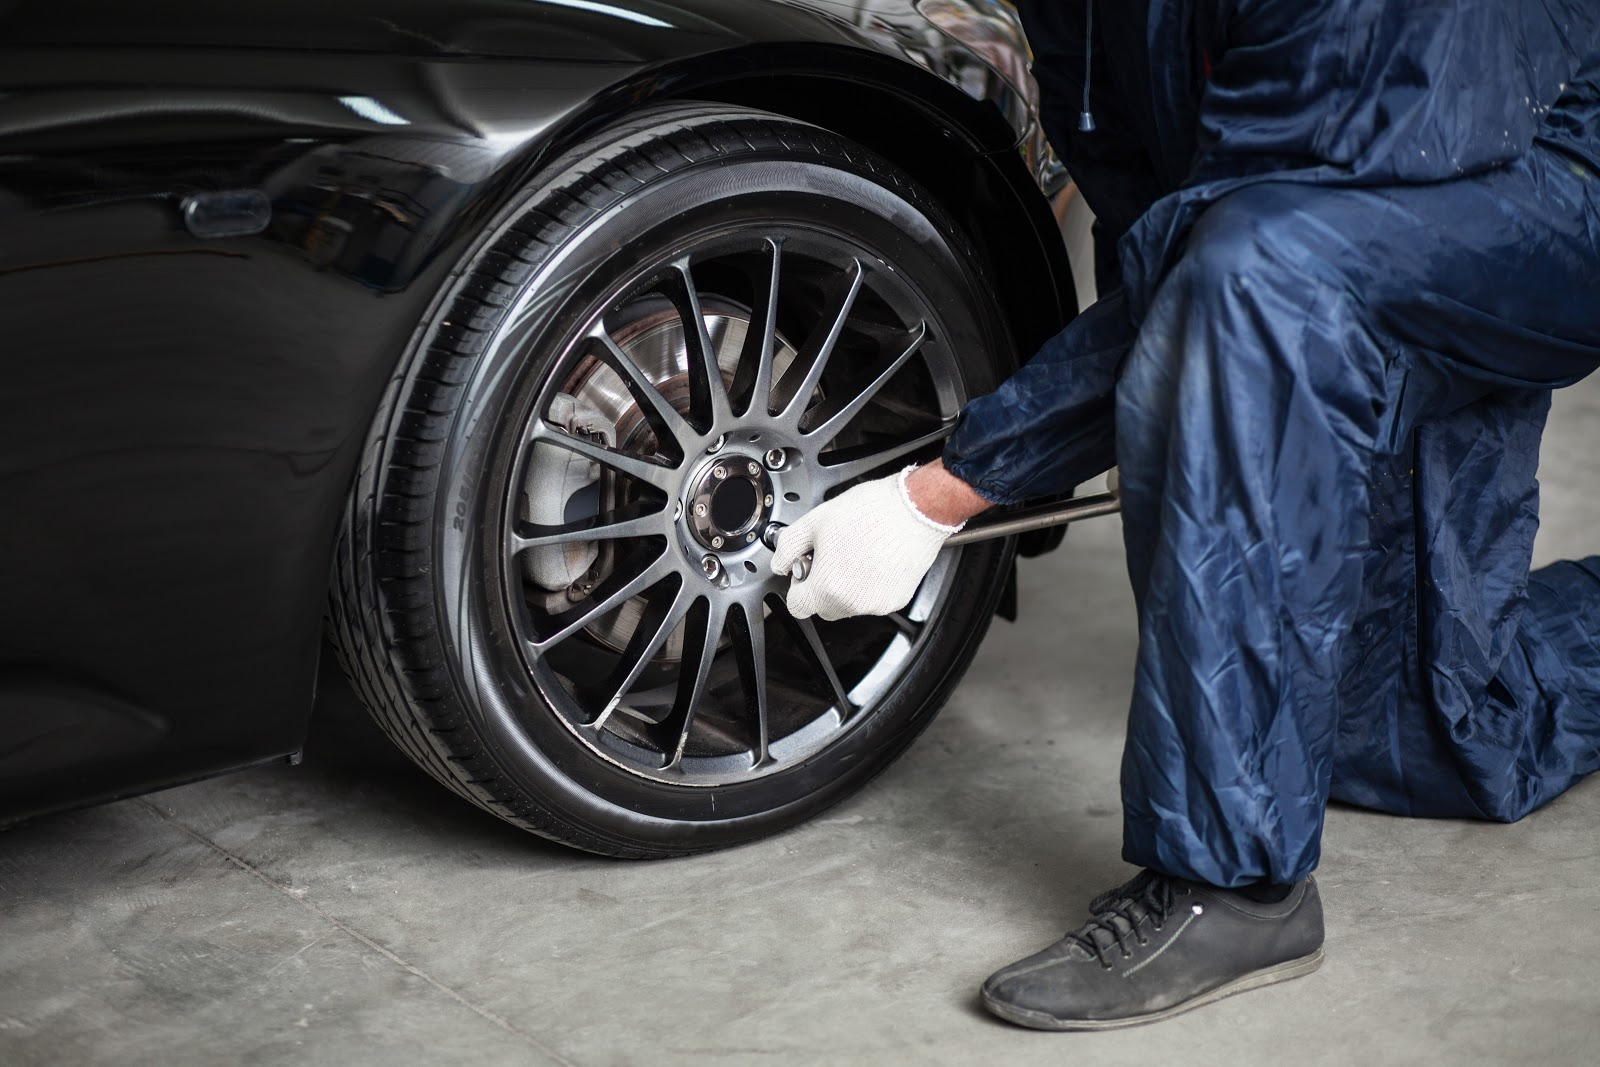 A mechanic fitting a new tyre onto a black car.